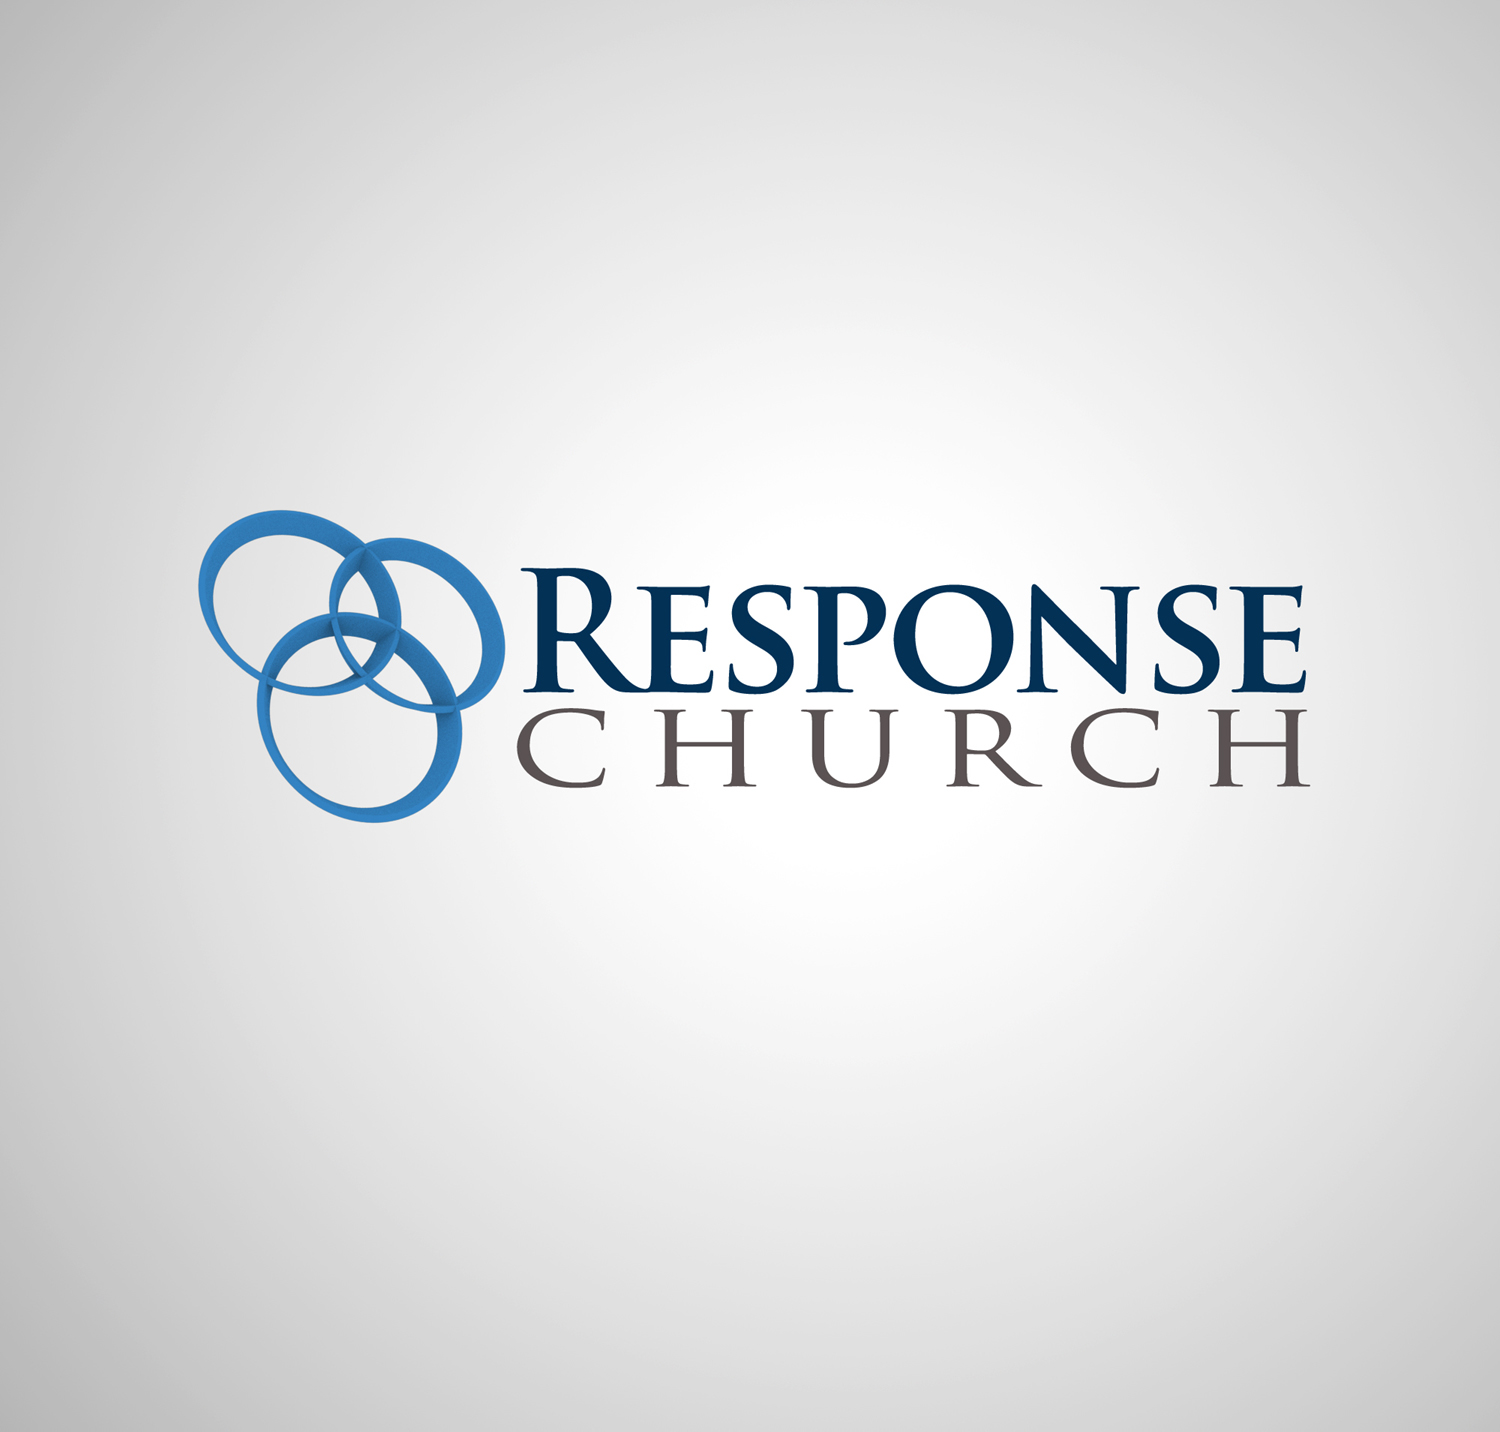 Masculine conservative logo design for response church by v g logo design by v g for a modern abstract and active 3 circle venn pooptronica